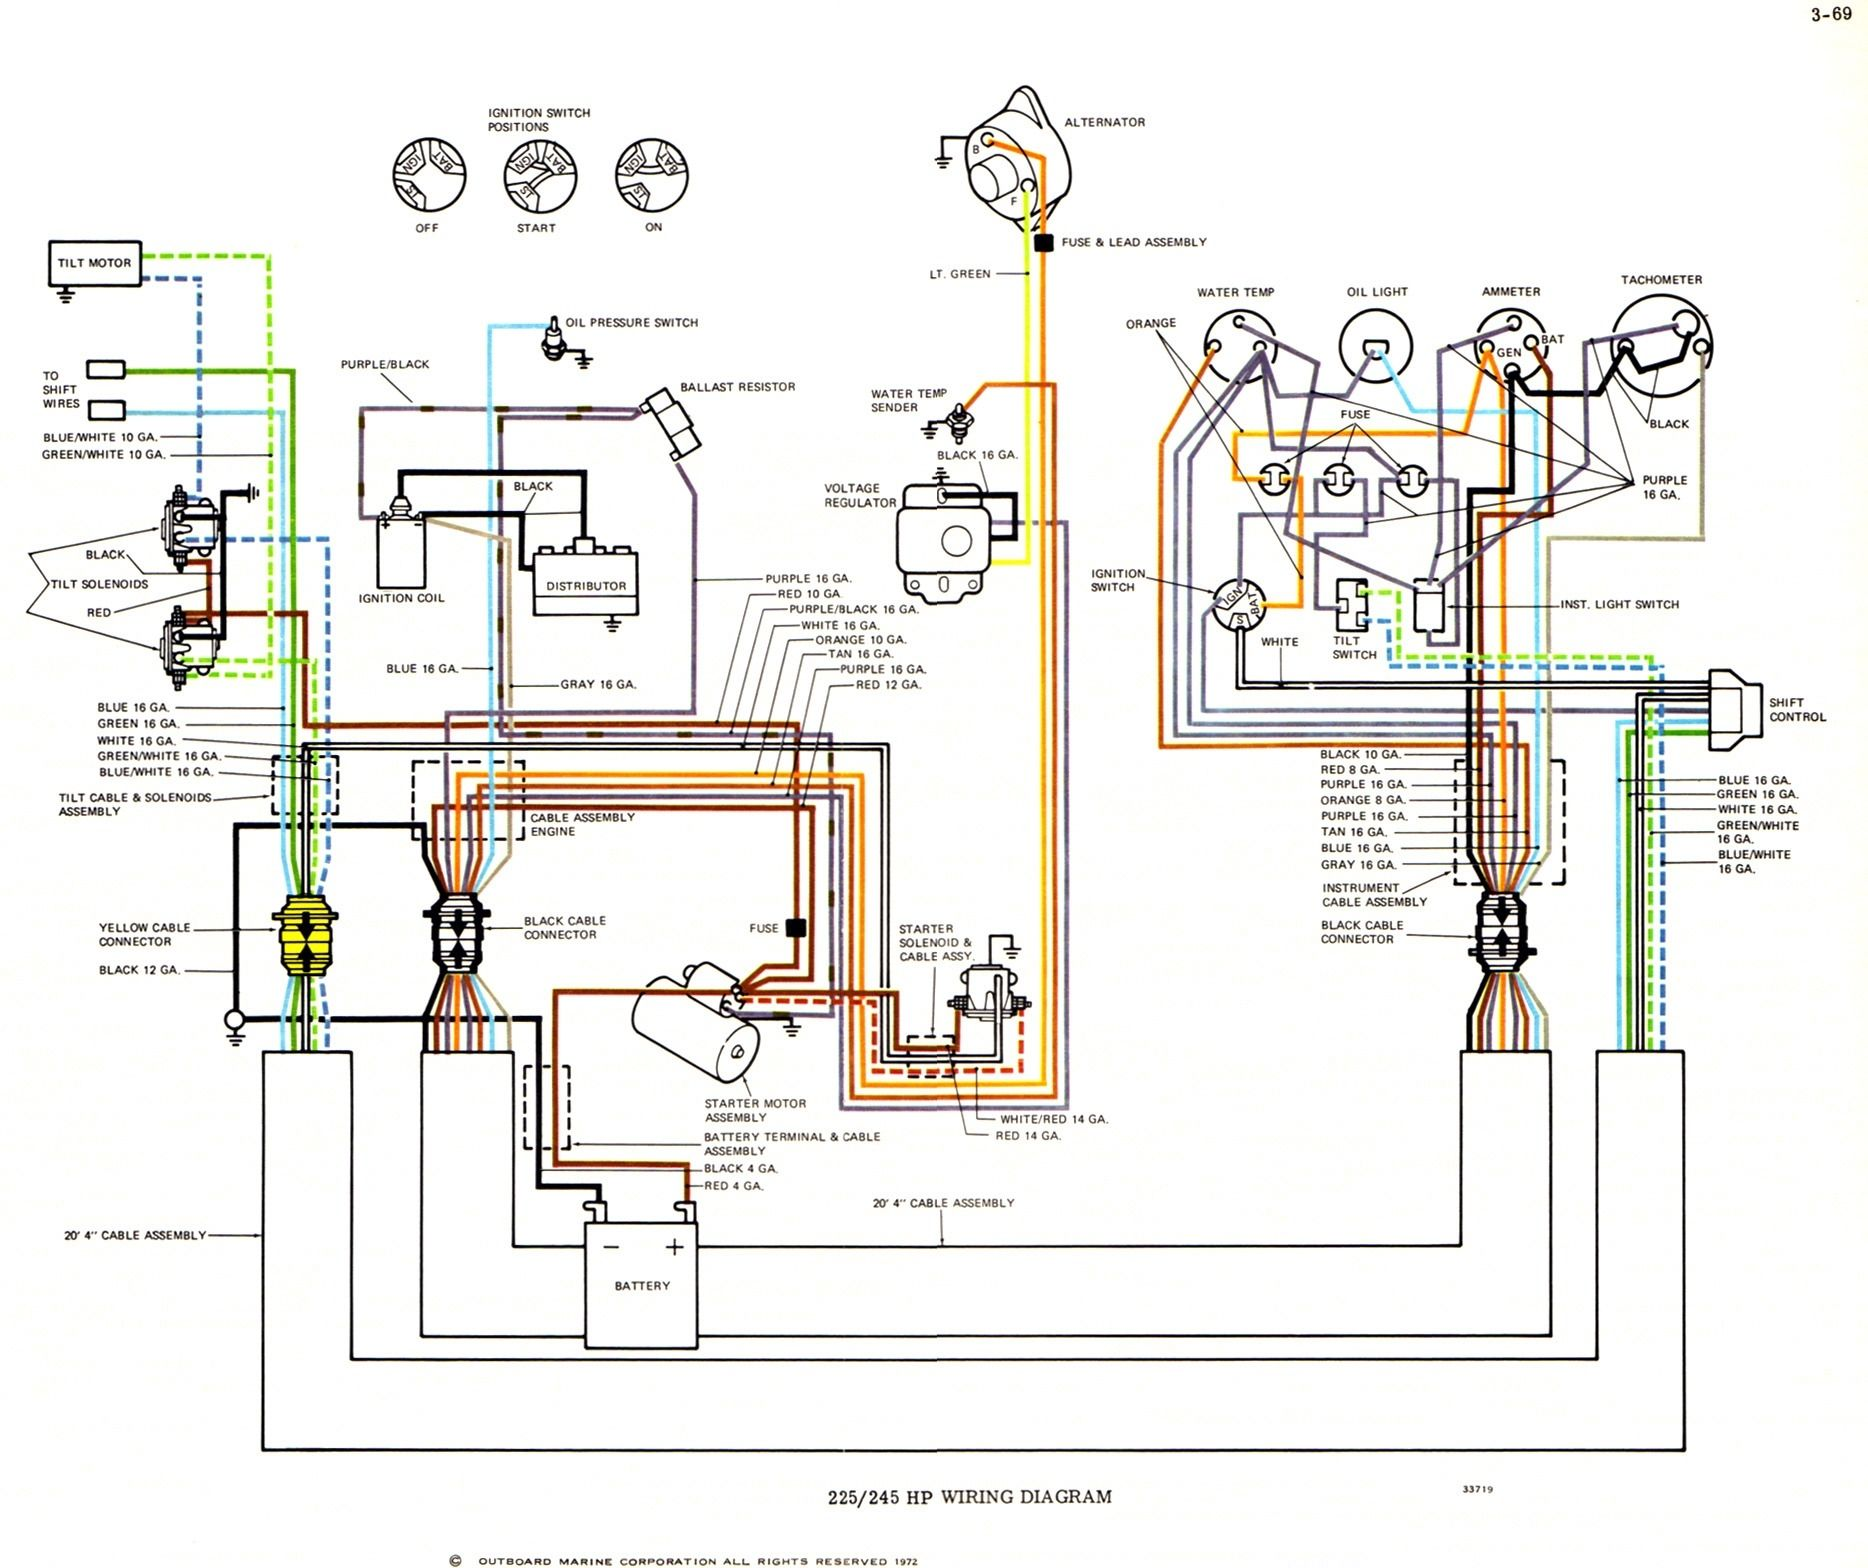 Yamaha 30 Hp Wiring Diagram - Wiring Diagram Source on